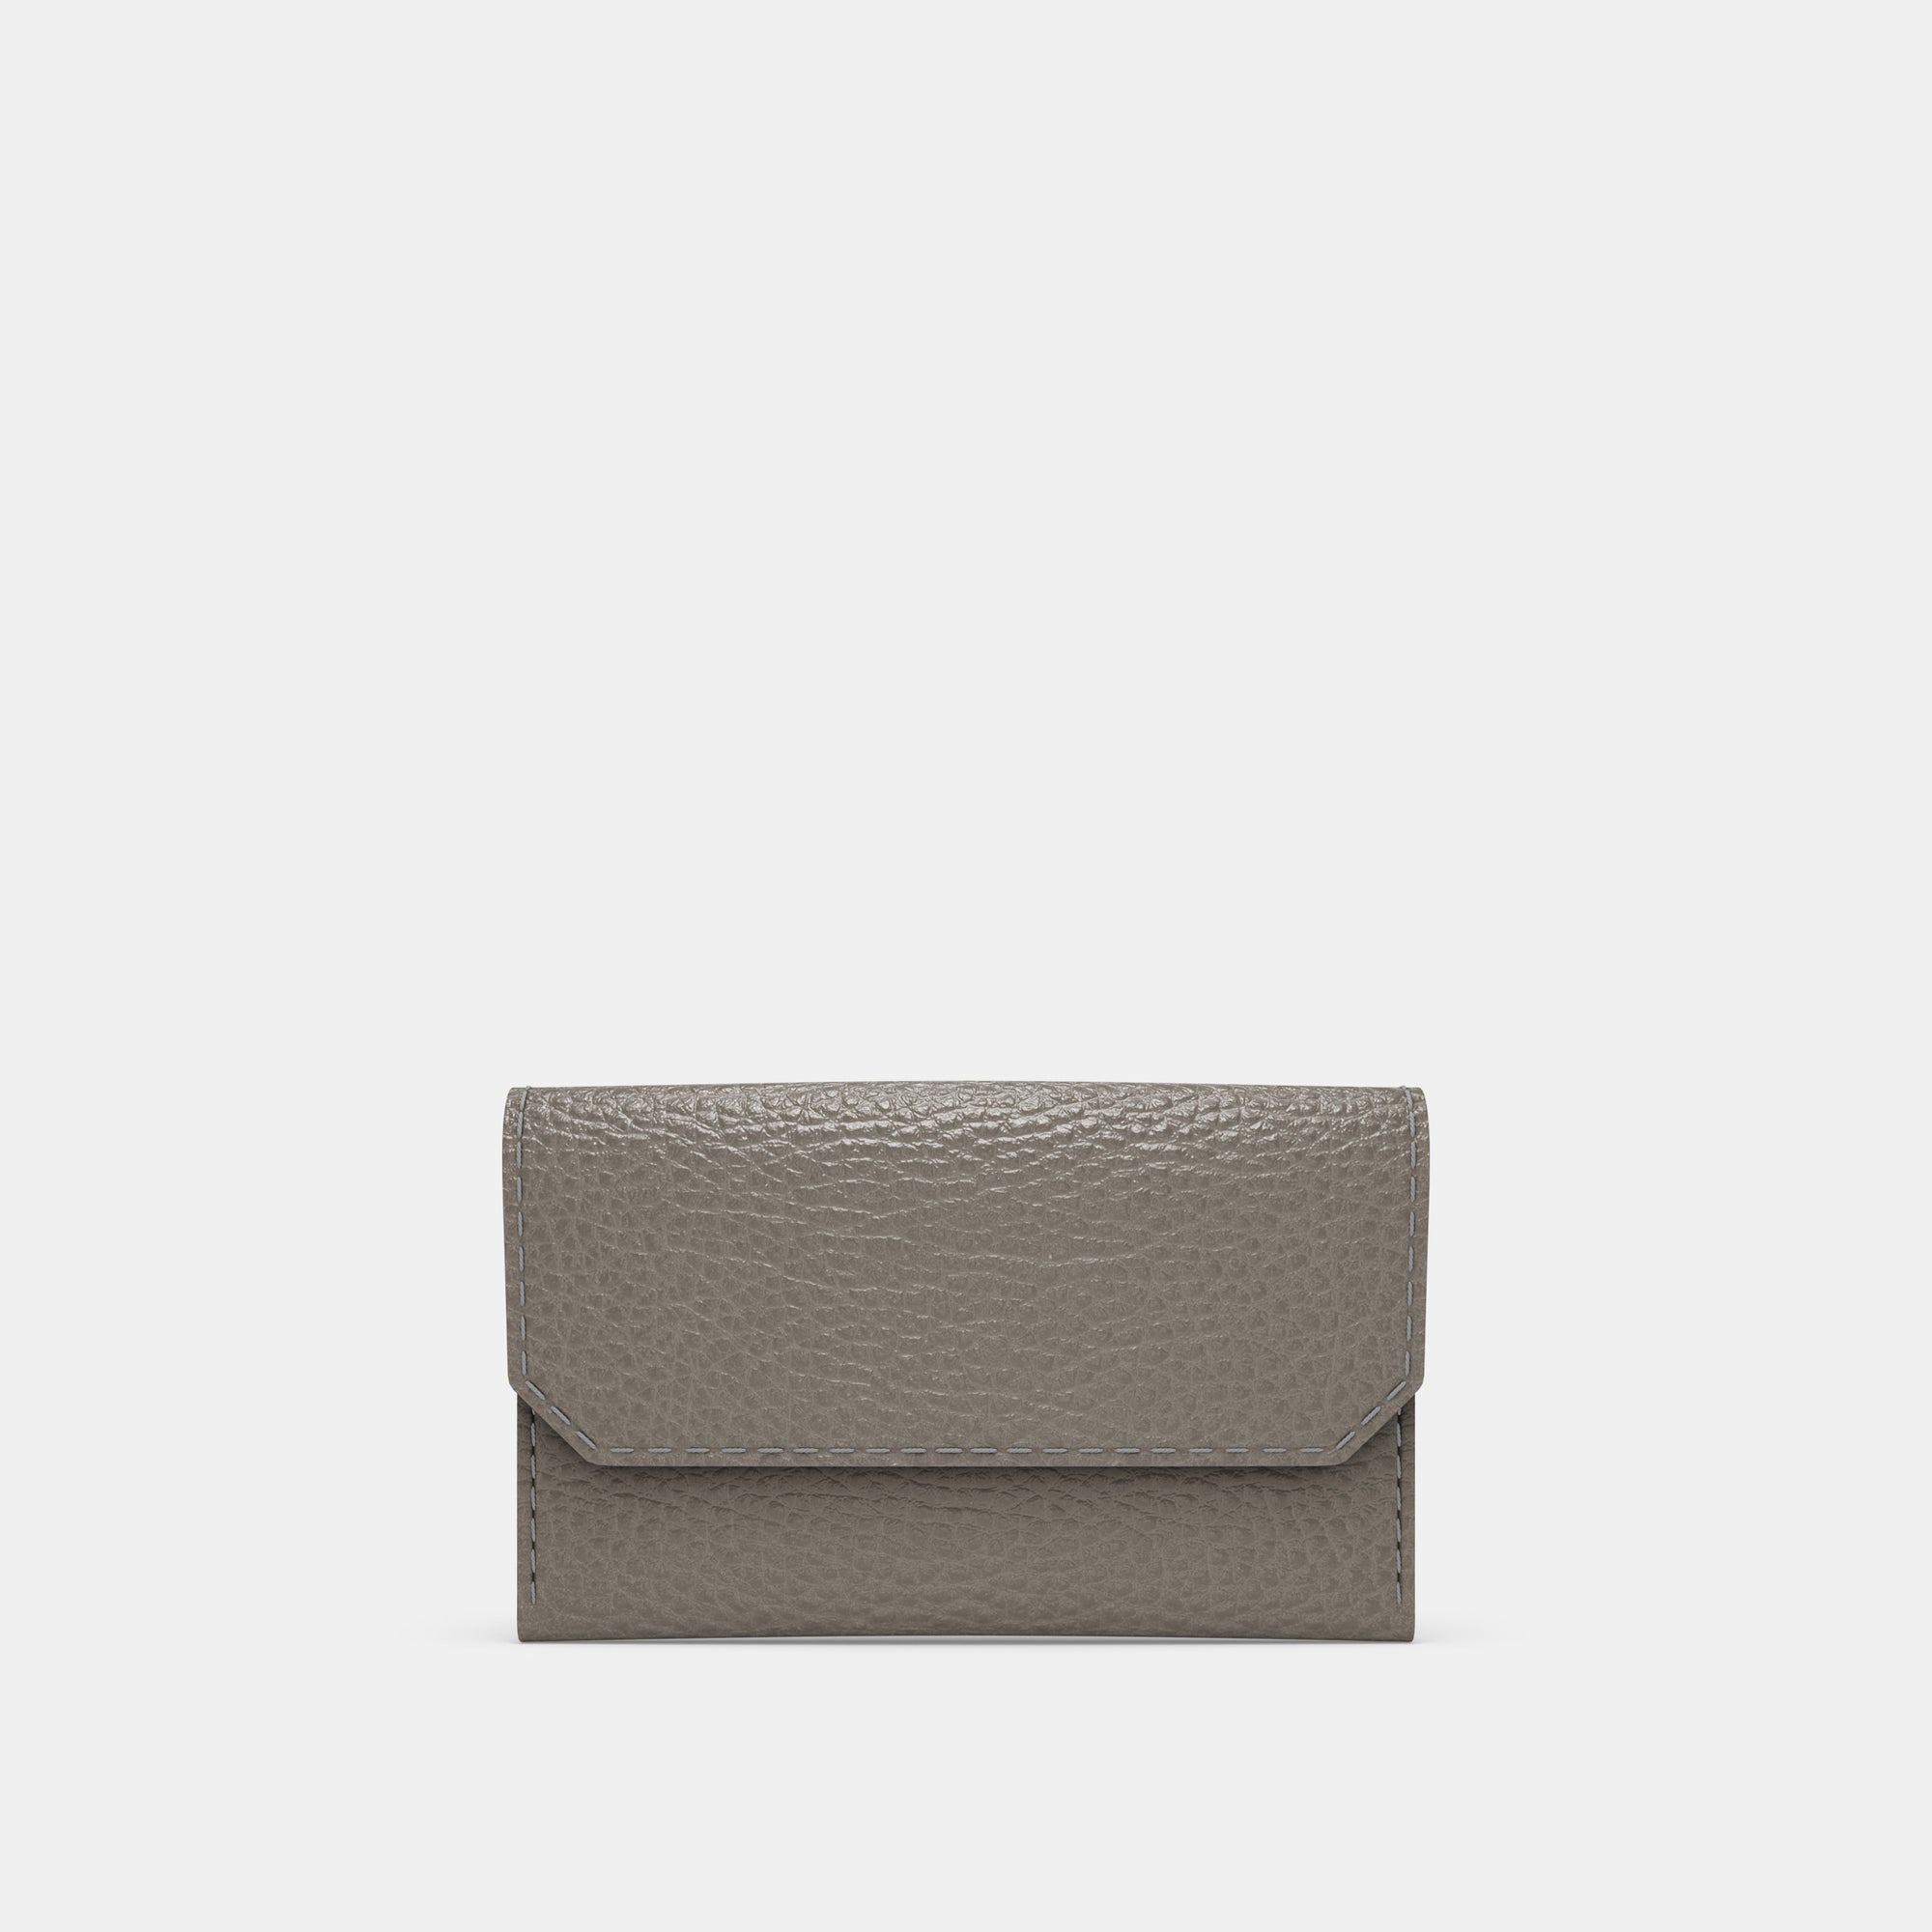 Carry-all Wallet - Zinc and Blue - RYAN London